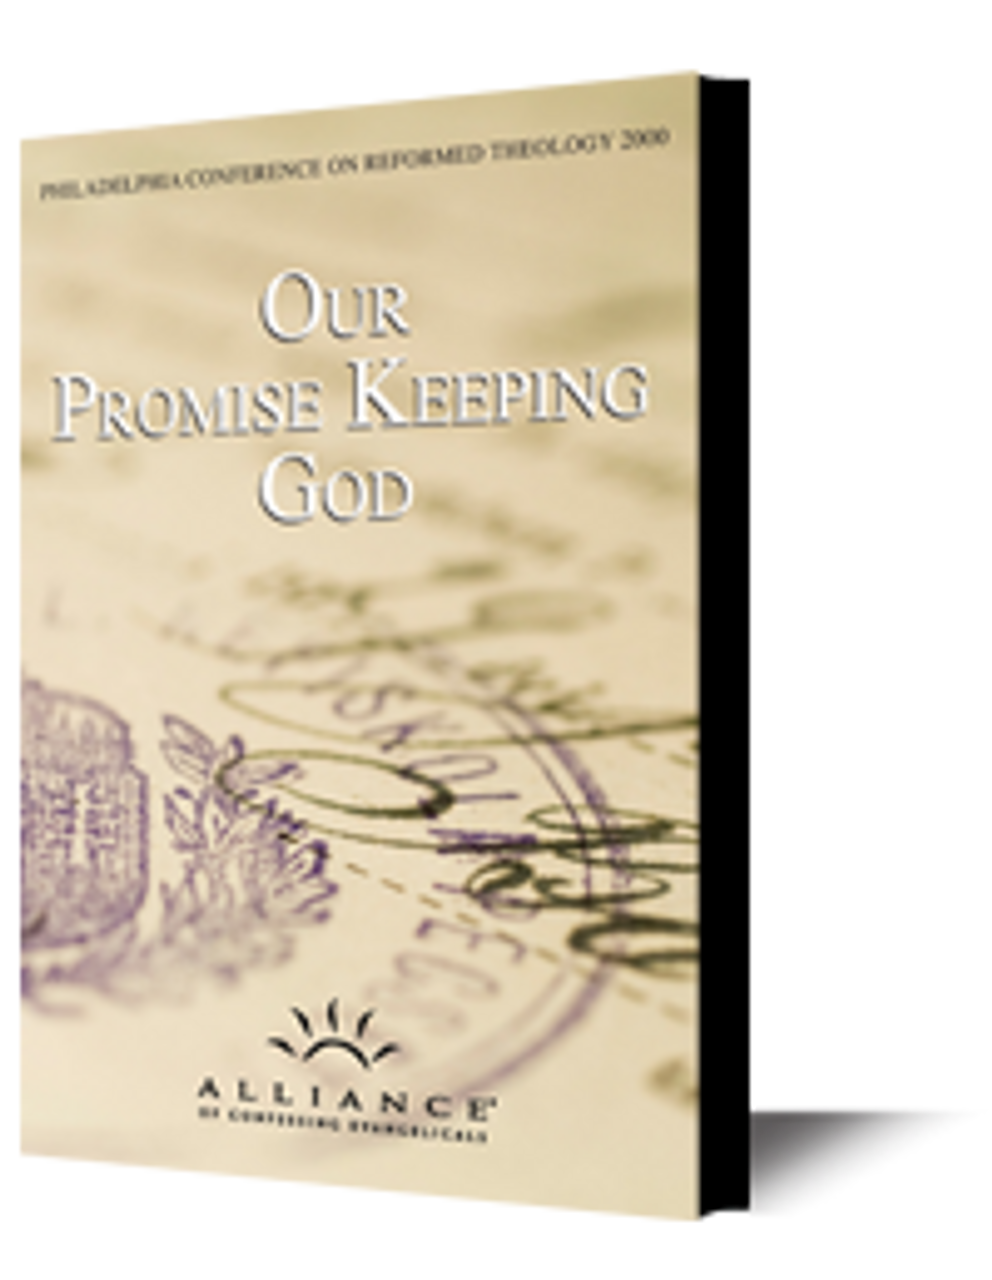 Our Promise Keeping God (CD Set)